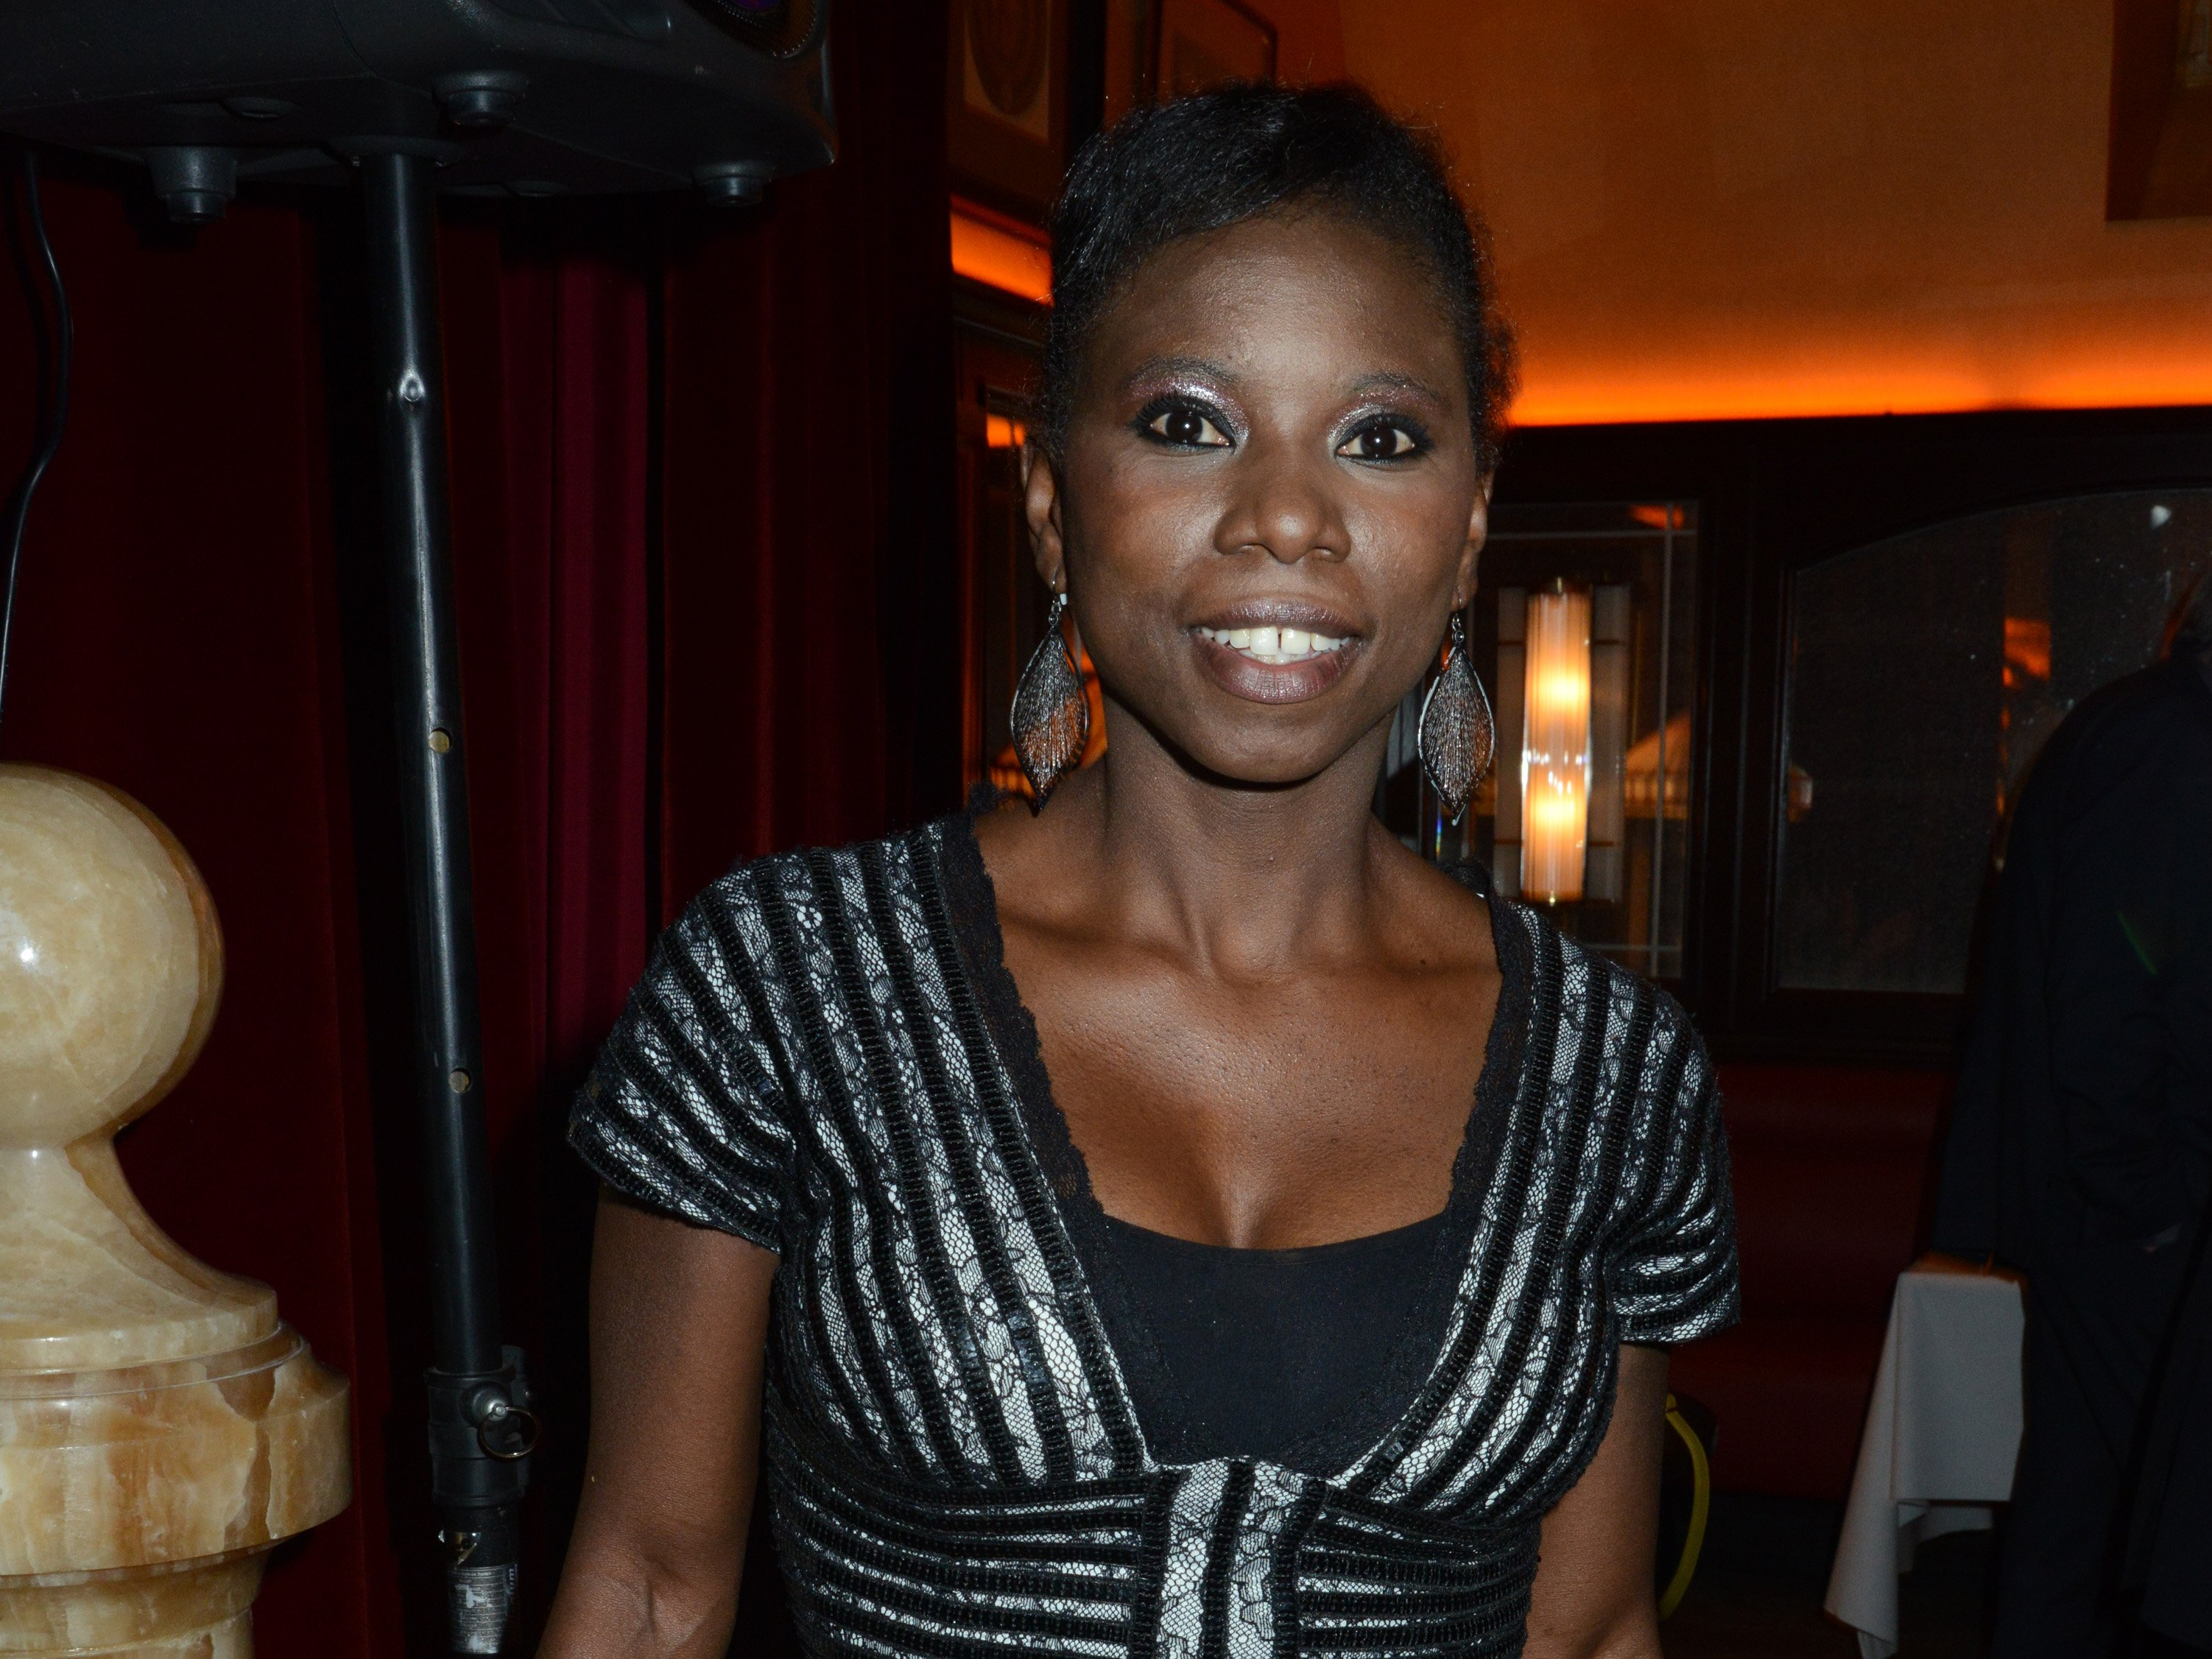 Ice skater Champion Surya Bonaly attends the 'Bistro Chic Napoleone' Champs Elysees Opening Cocktail on November 6, 2013 | Photo: Getty Images